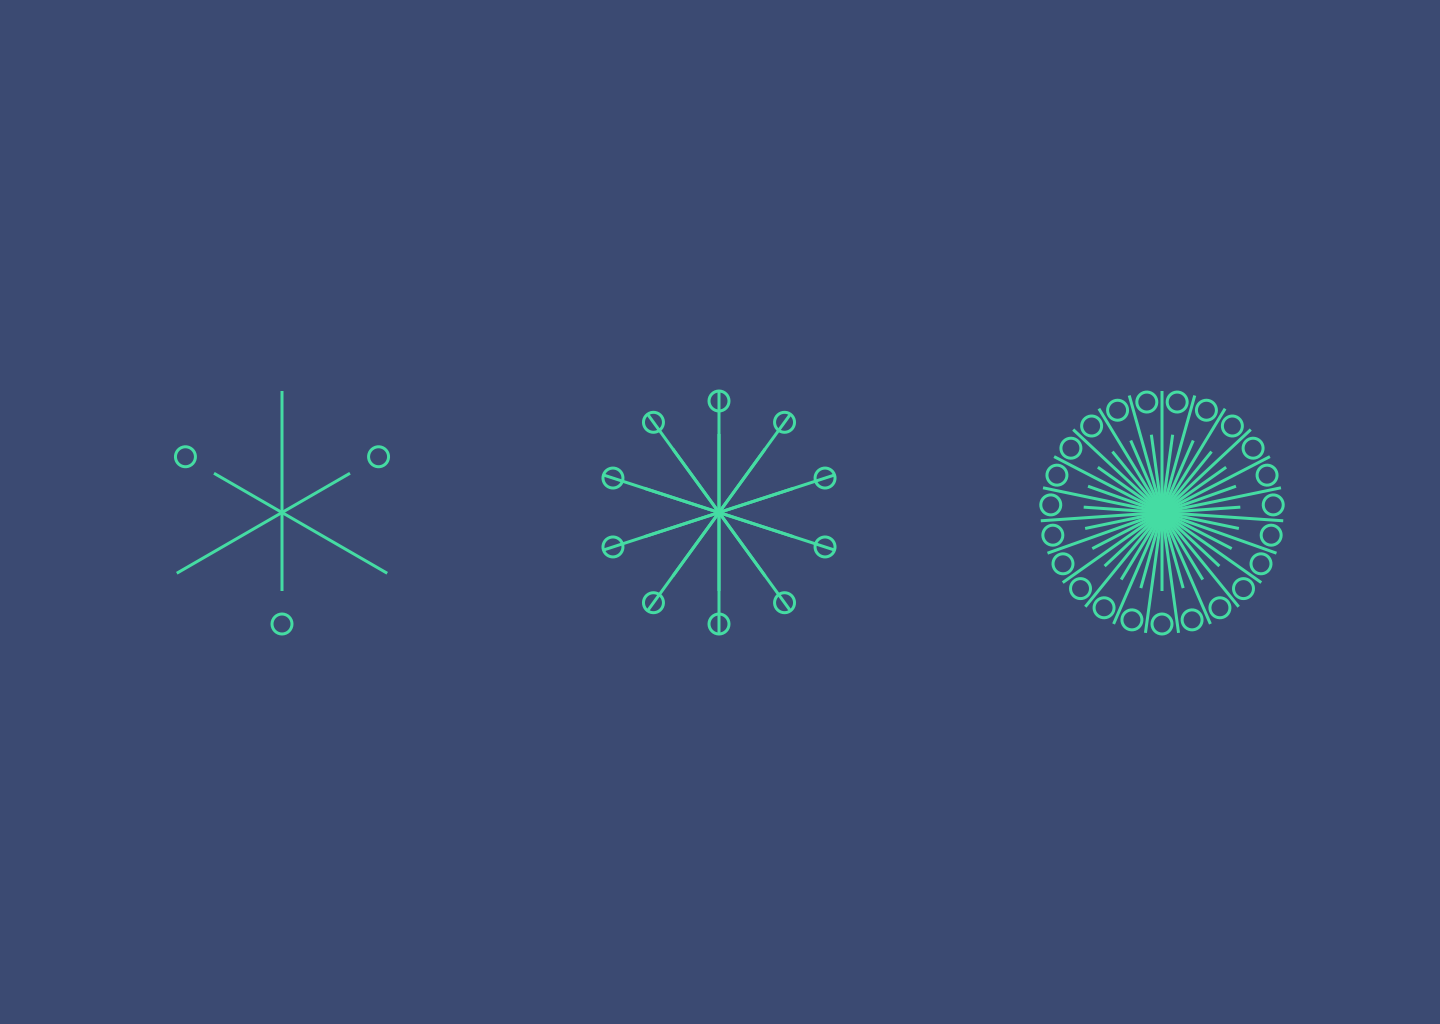 3 ornaments made with Sketch and Looper